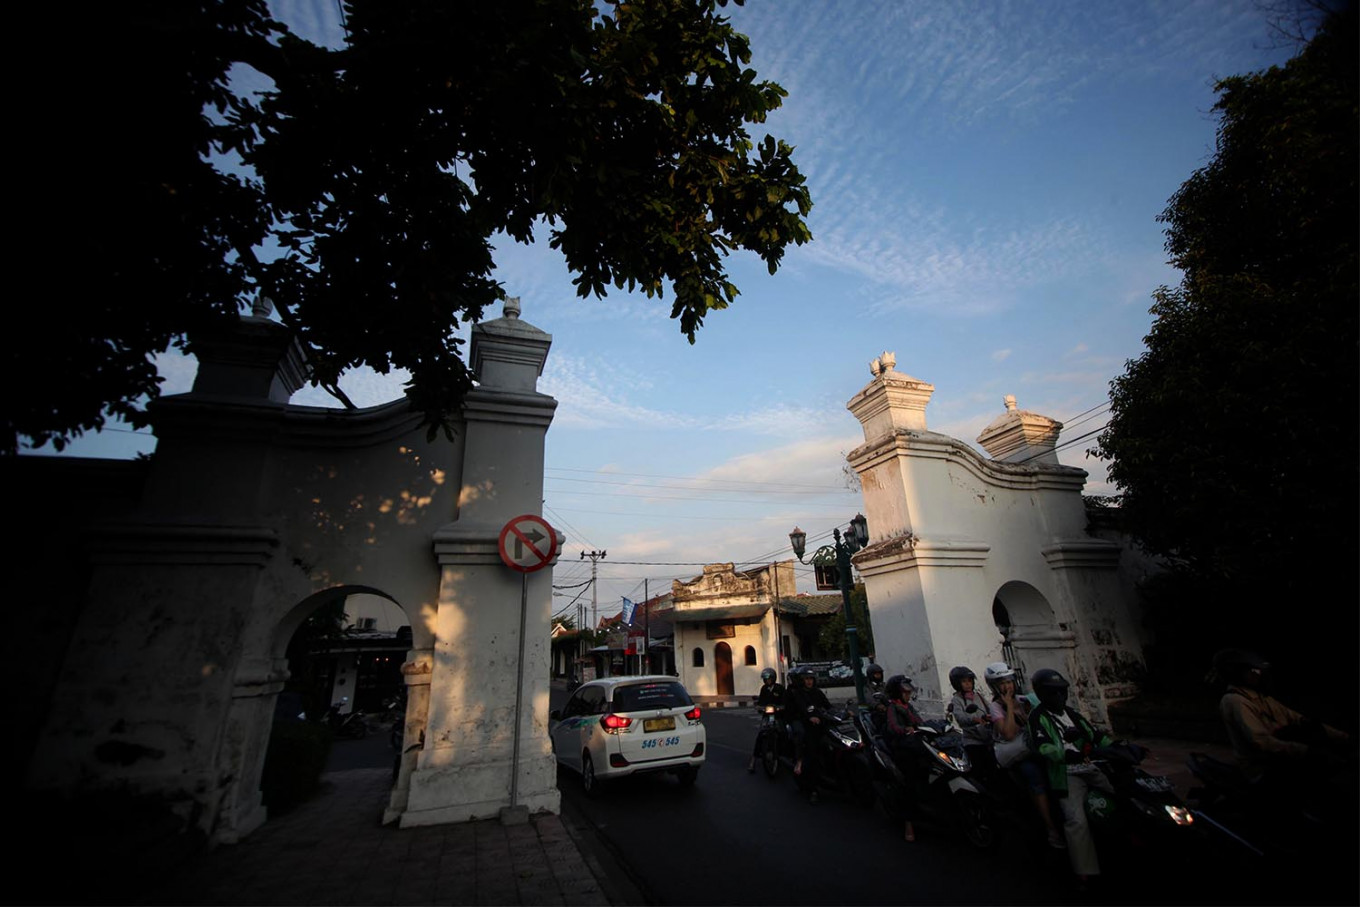 The Jagabaya Arch at the Taman Sari crossing, located in the western part of the palace, was rebuilt without a top. JP/Boy T. Harjanto